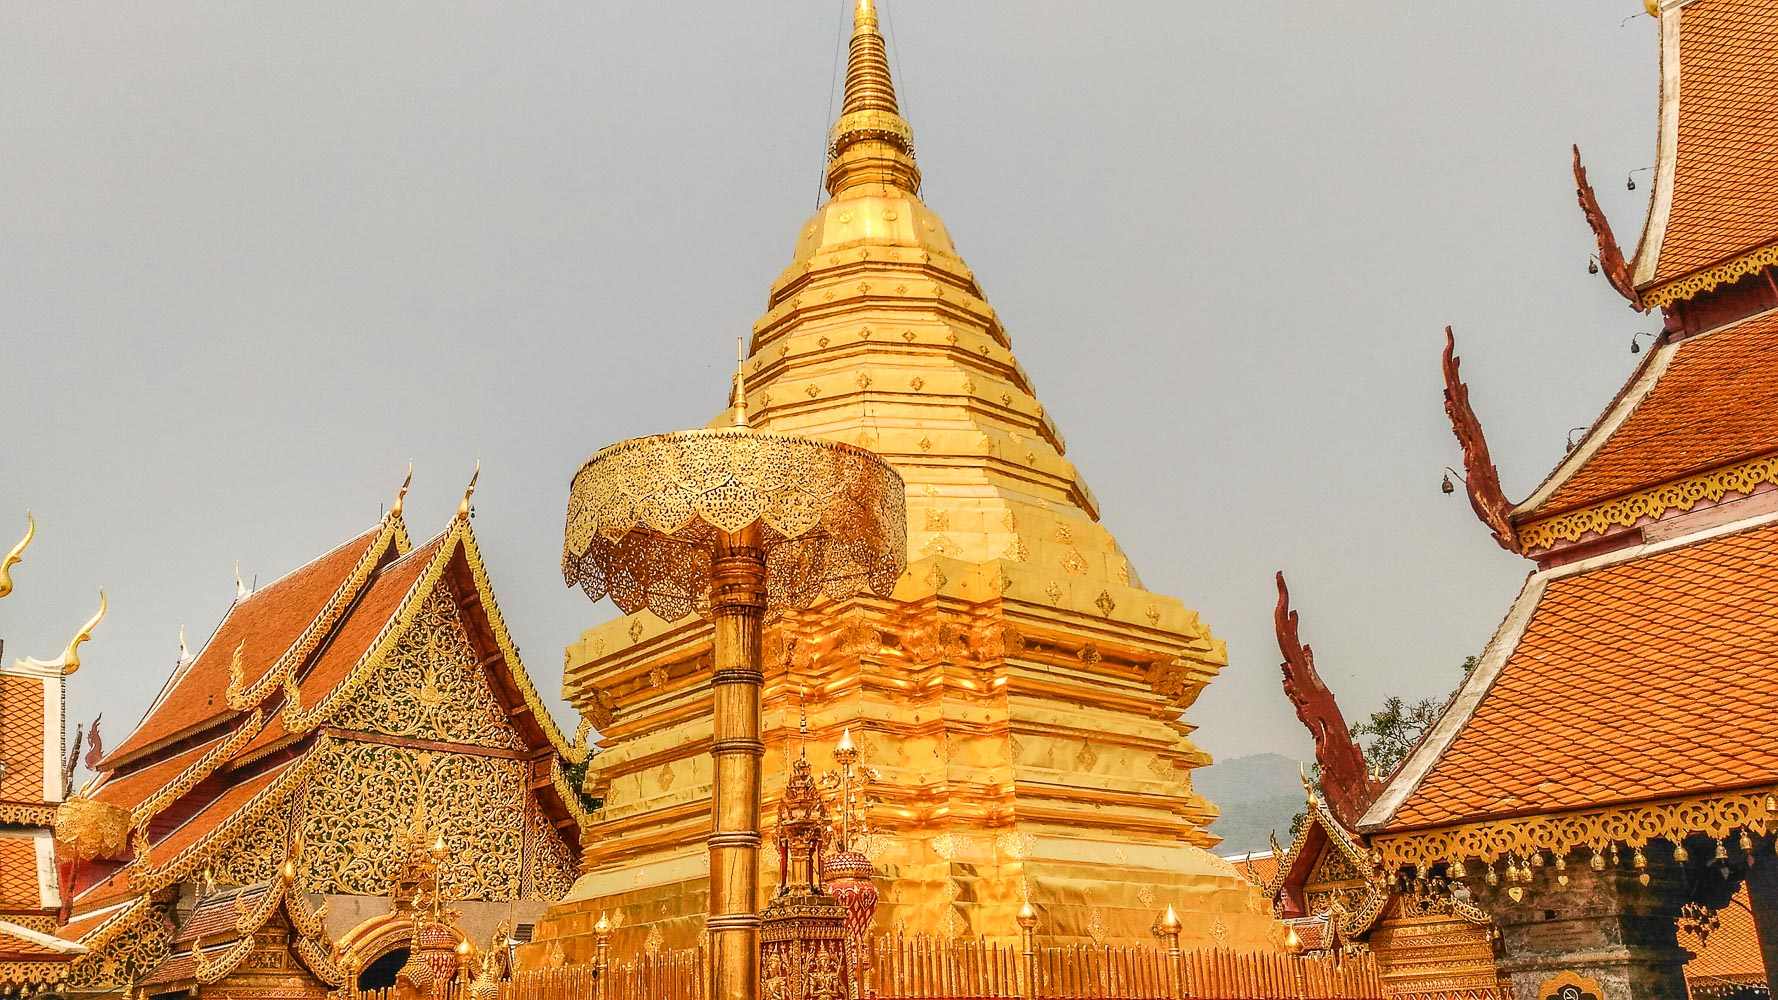 One of the most popular temple in all of Thailand